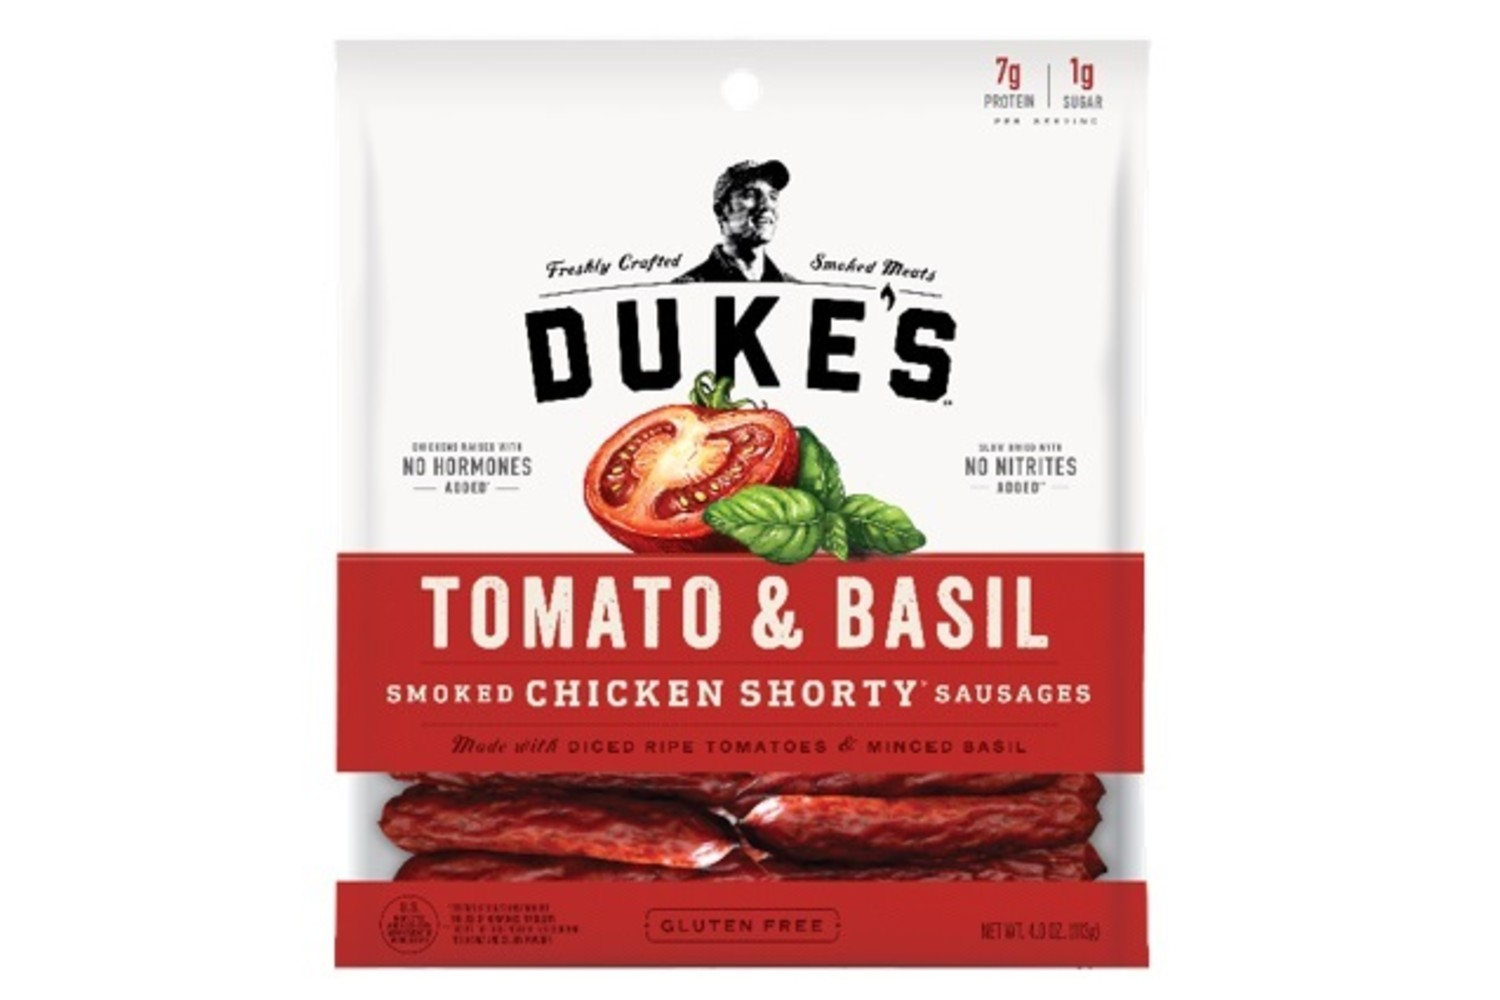 DUKES Tomato and Basil Chicken Sausages